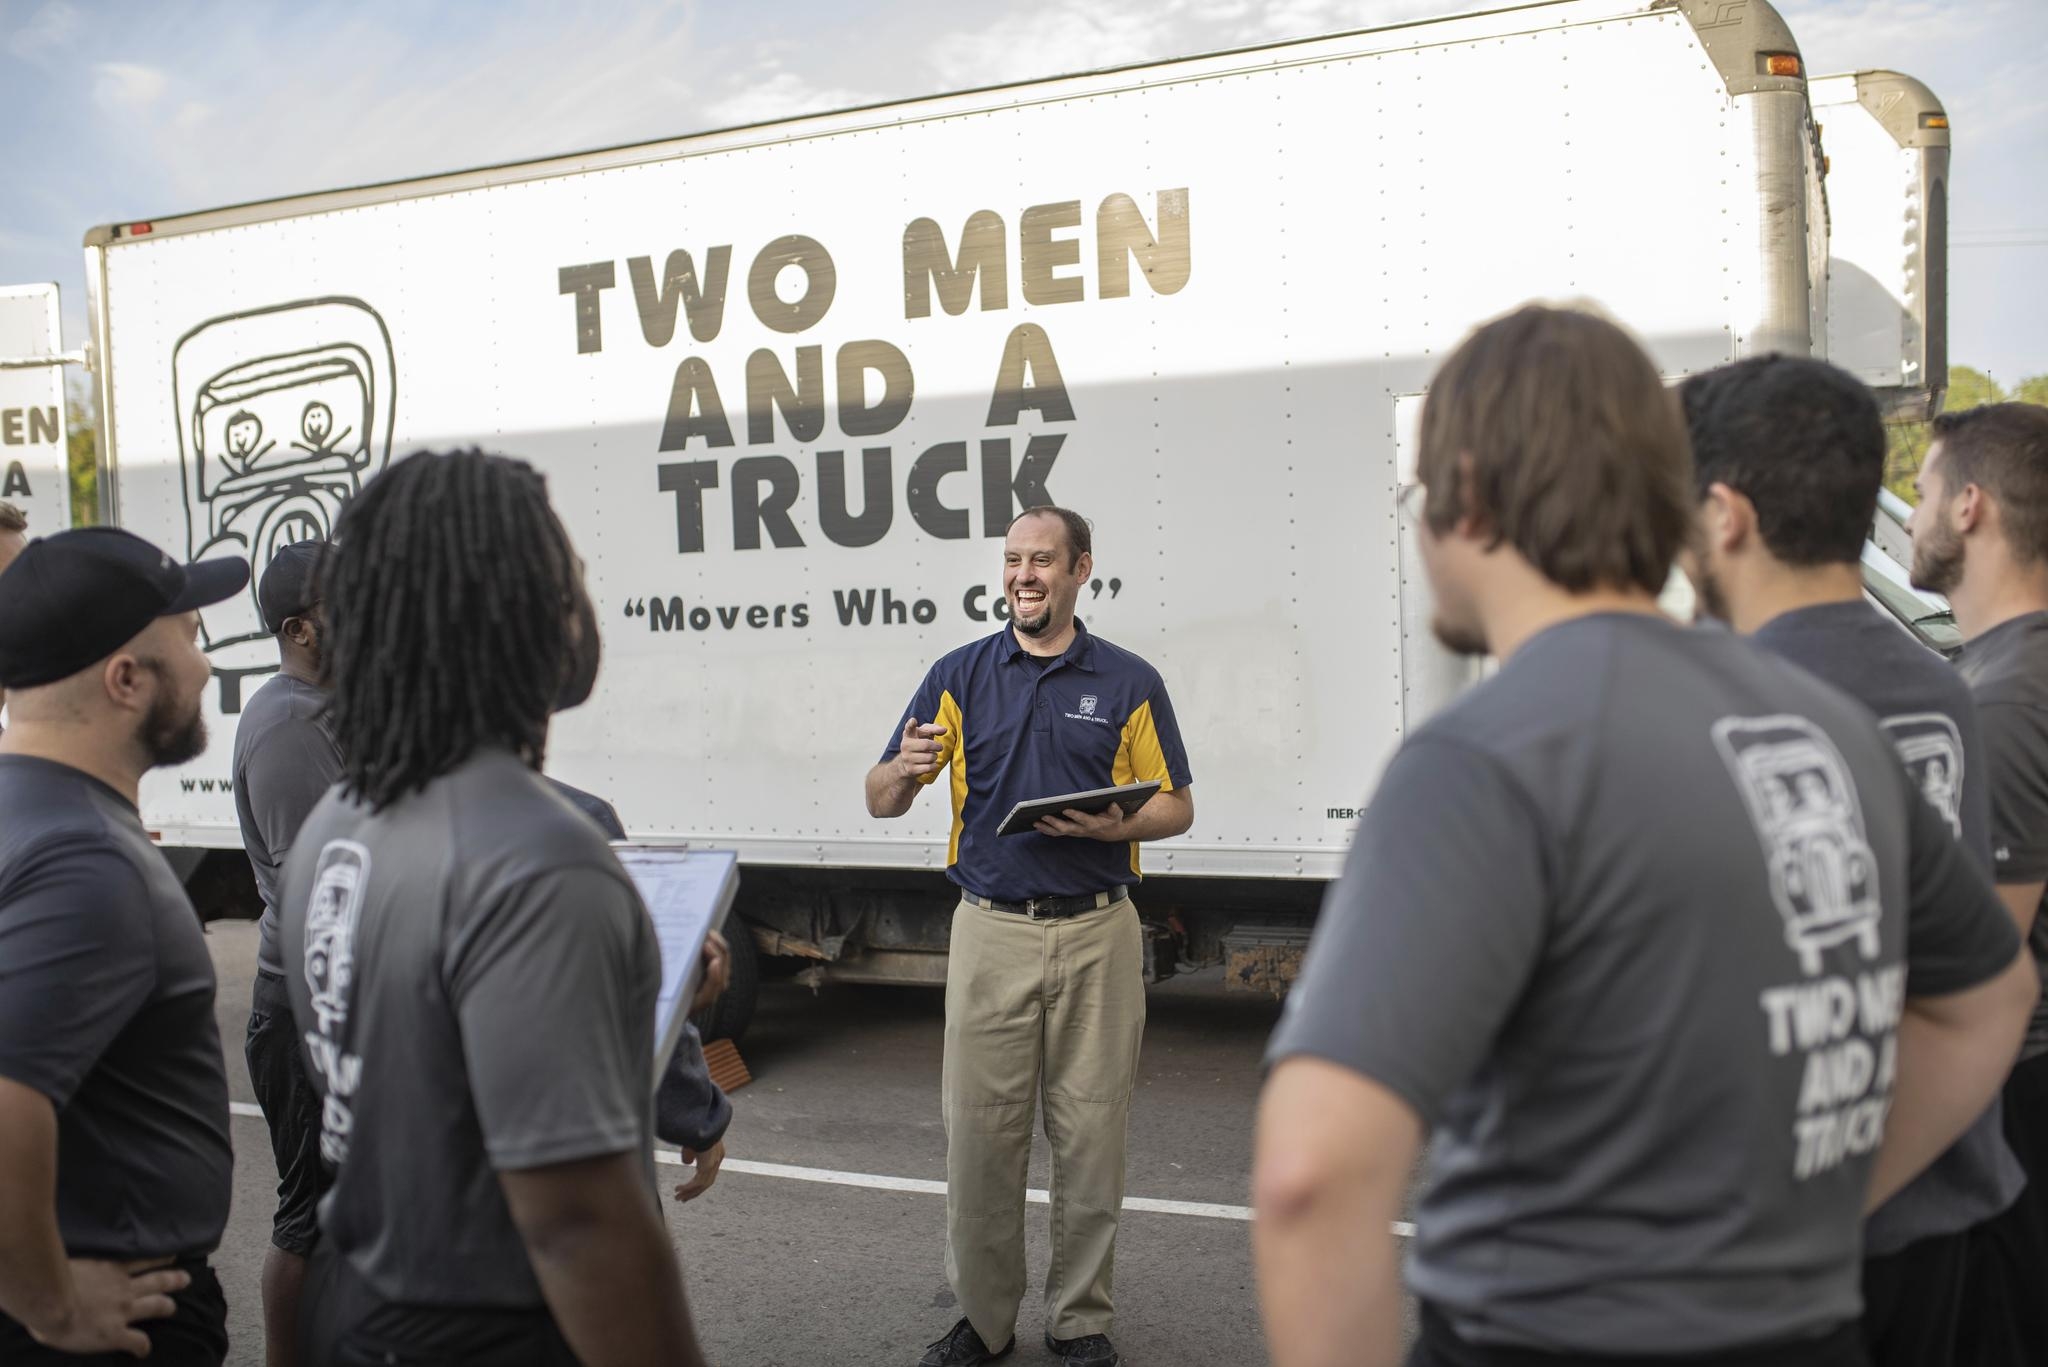 Manager giving instructions to the move team outside beside a truck